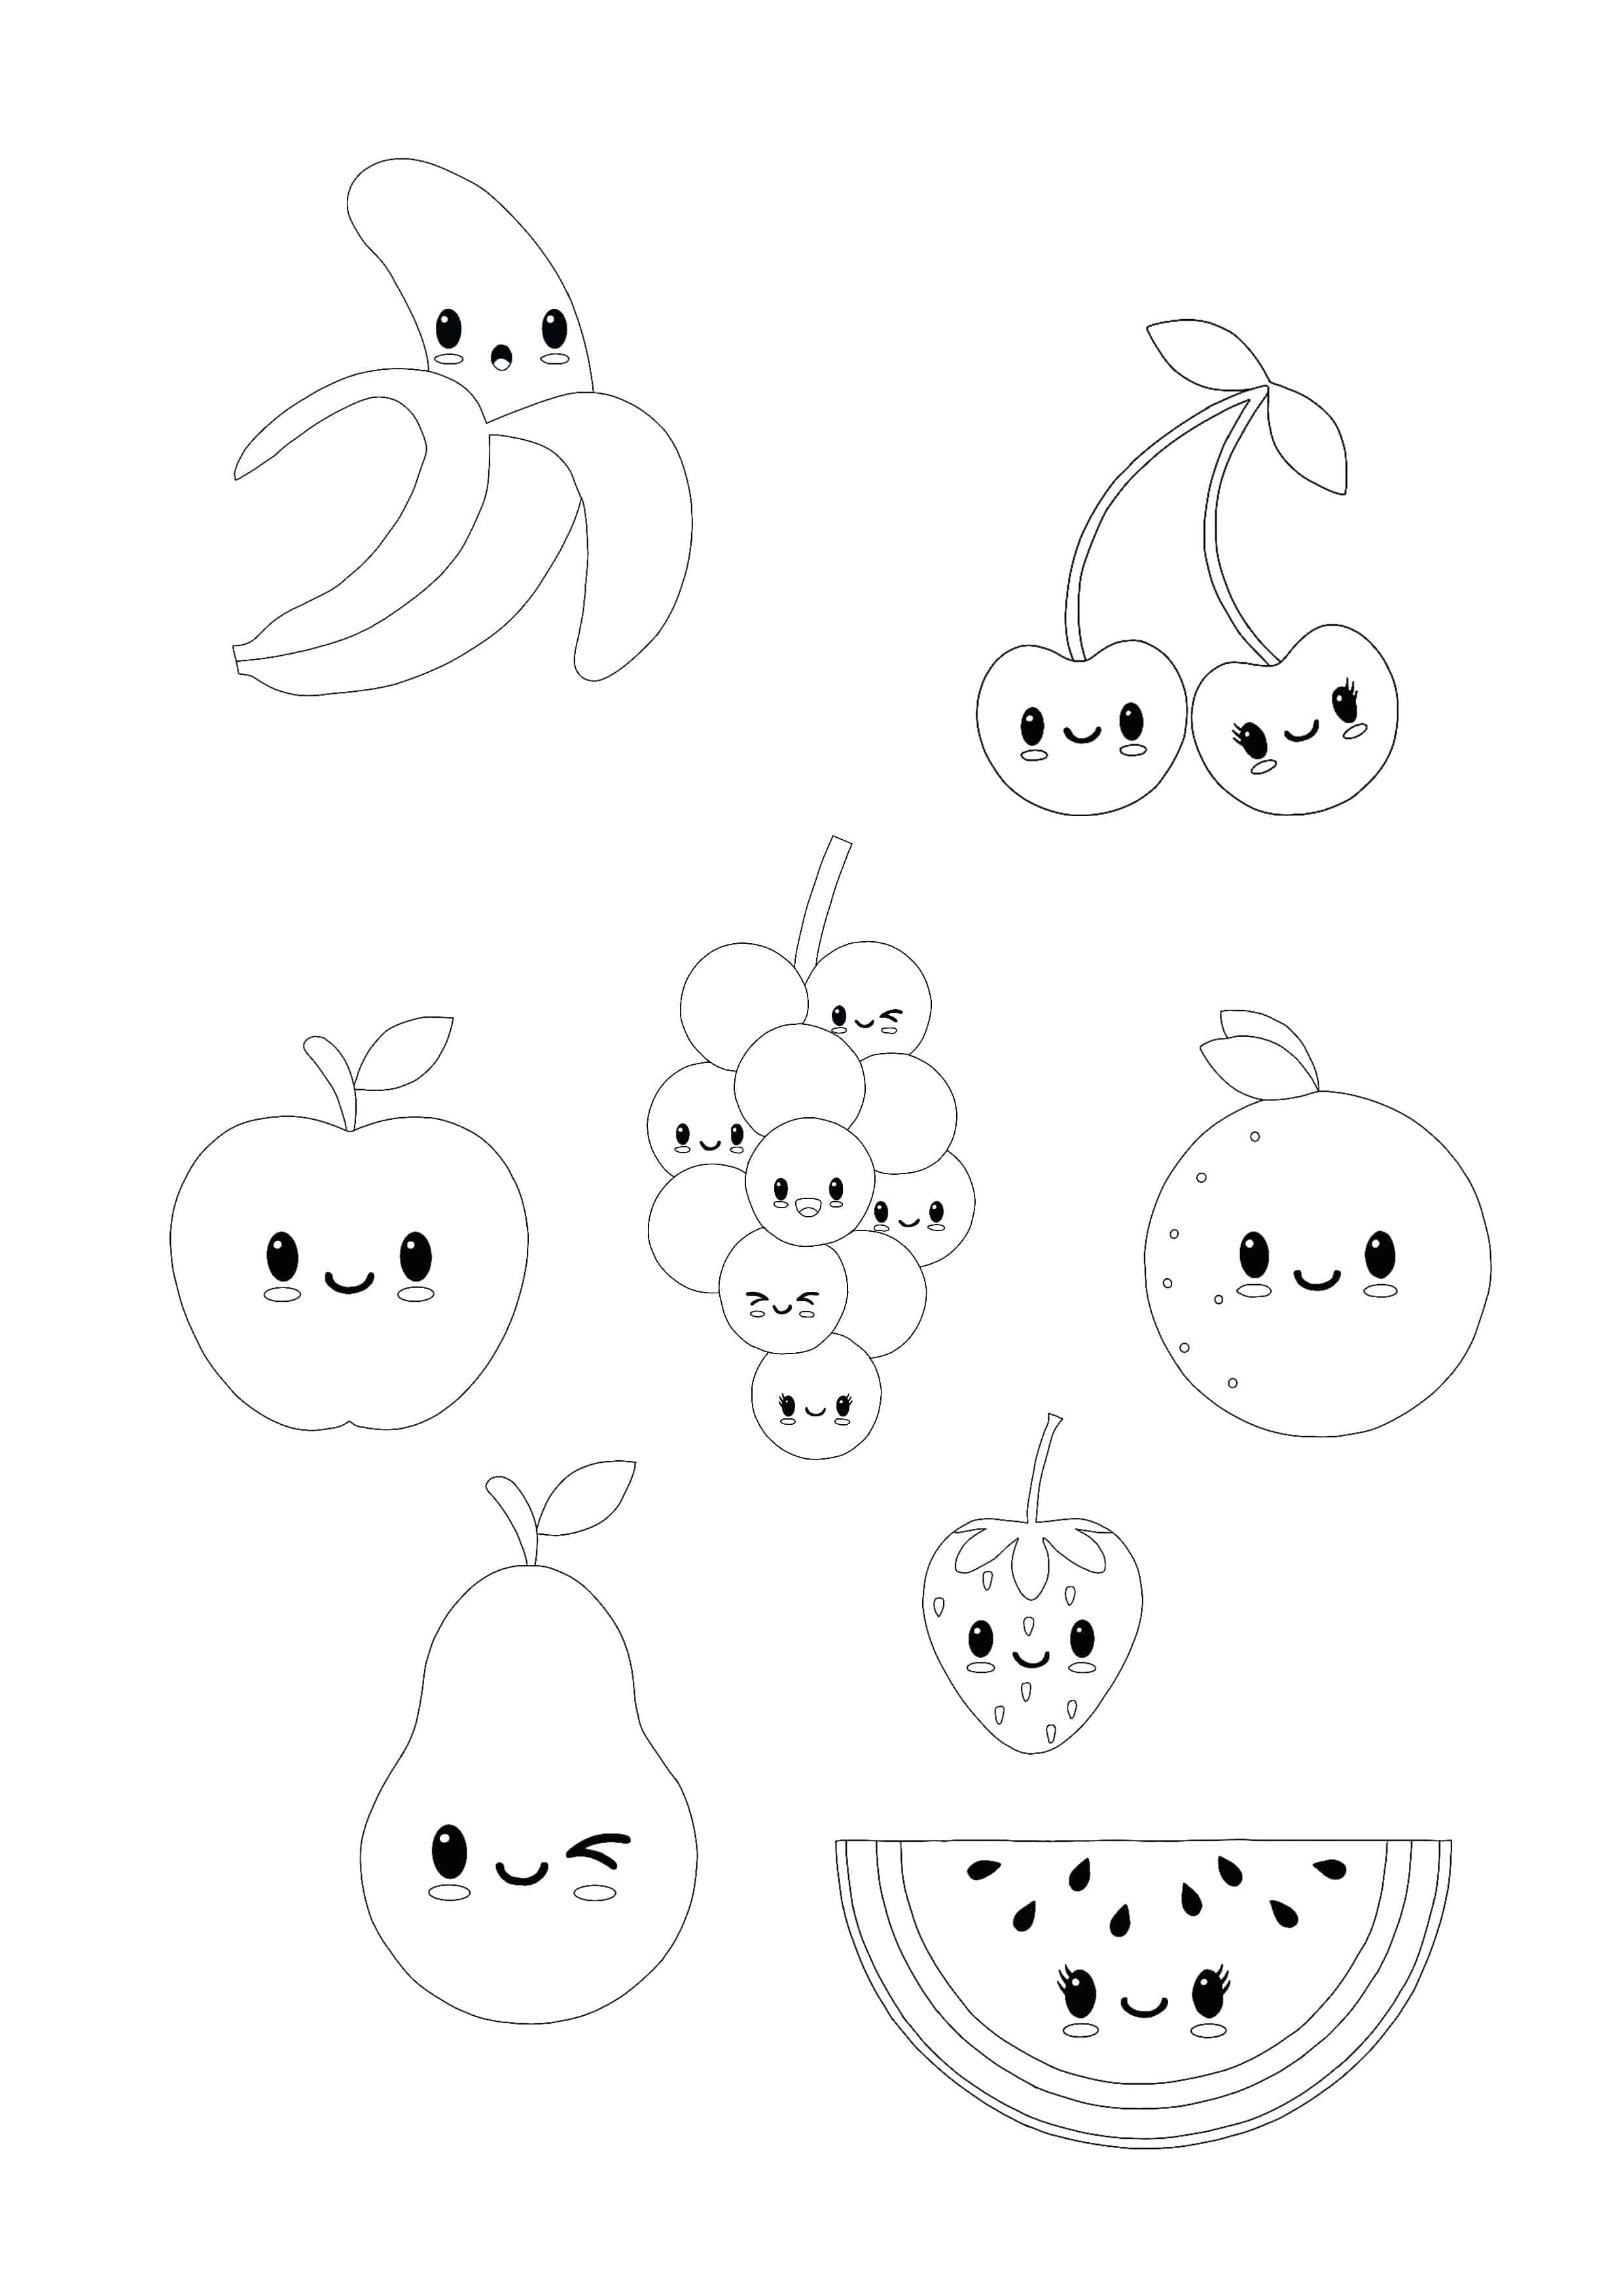 Kawaii Fruits coloring page  Fruit coloring pages, Apple coloring